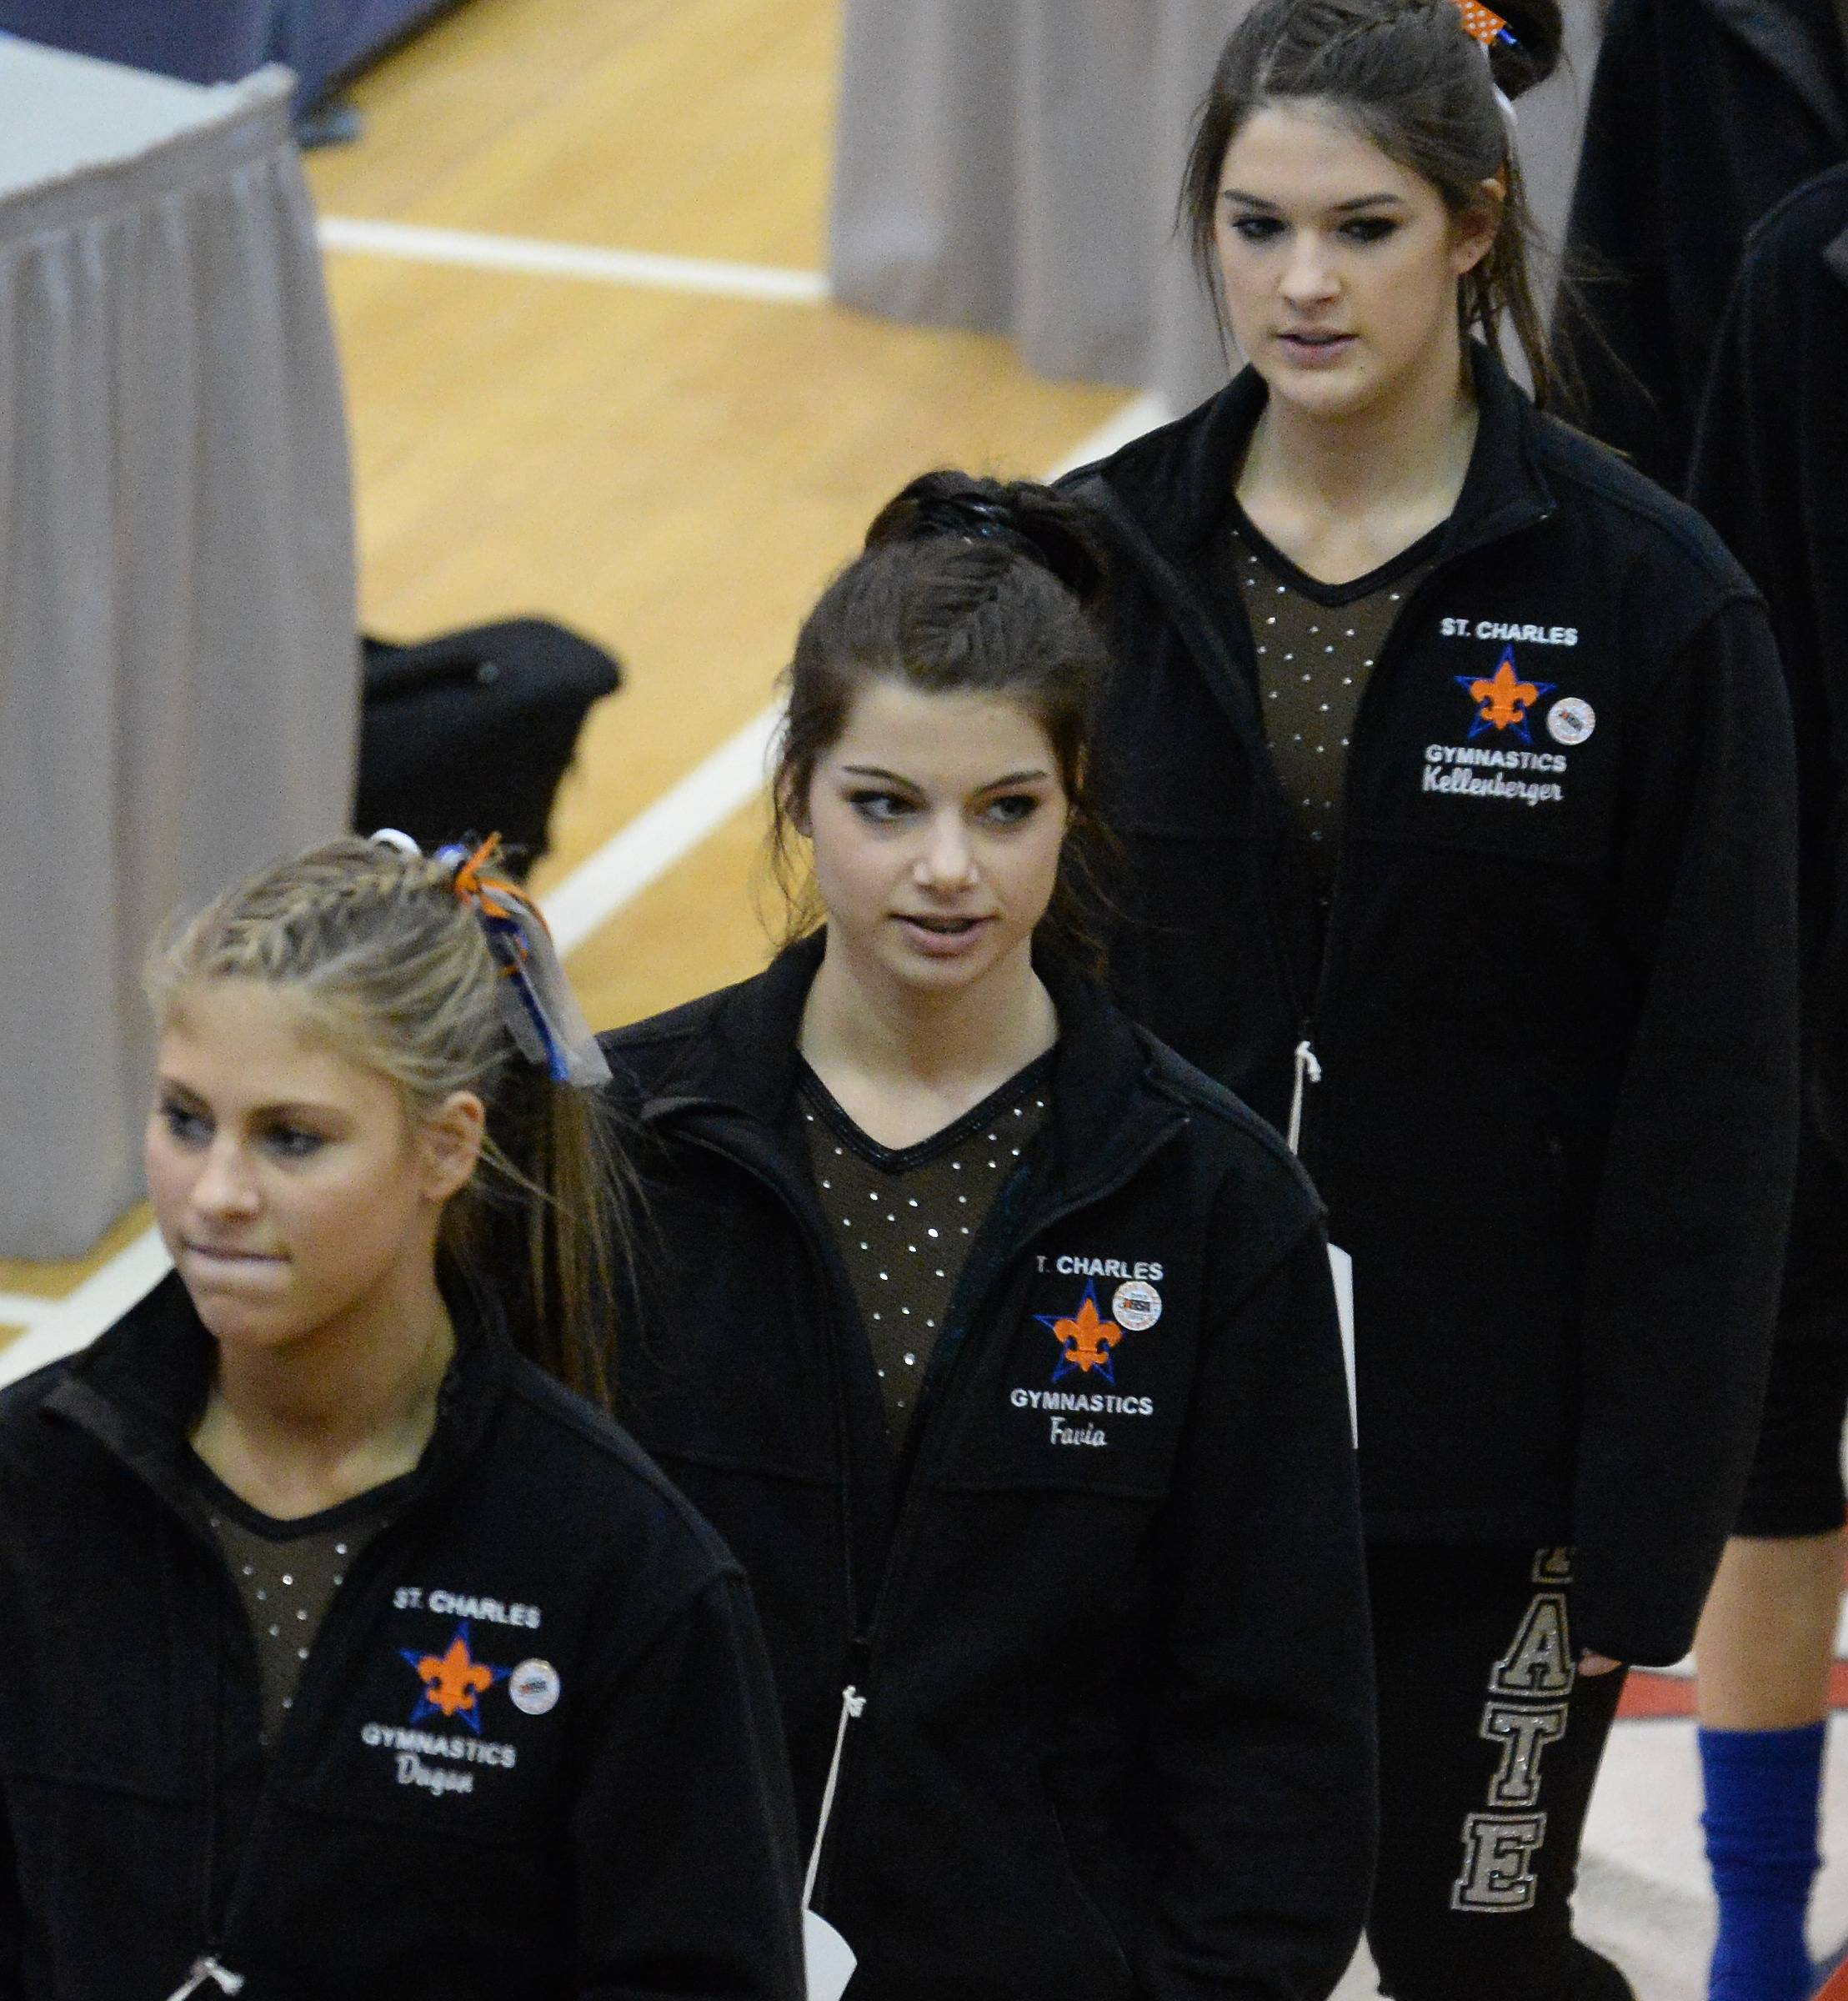 Images from Girls State Gymnastics Finals held at Palatine High School on Friday, February 21, 2014.